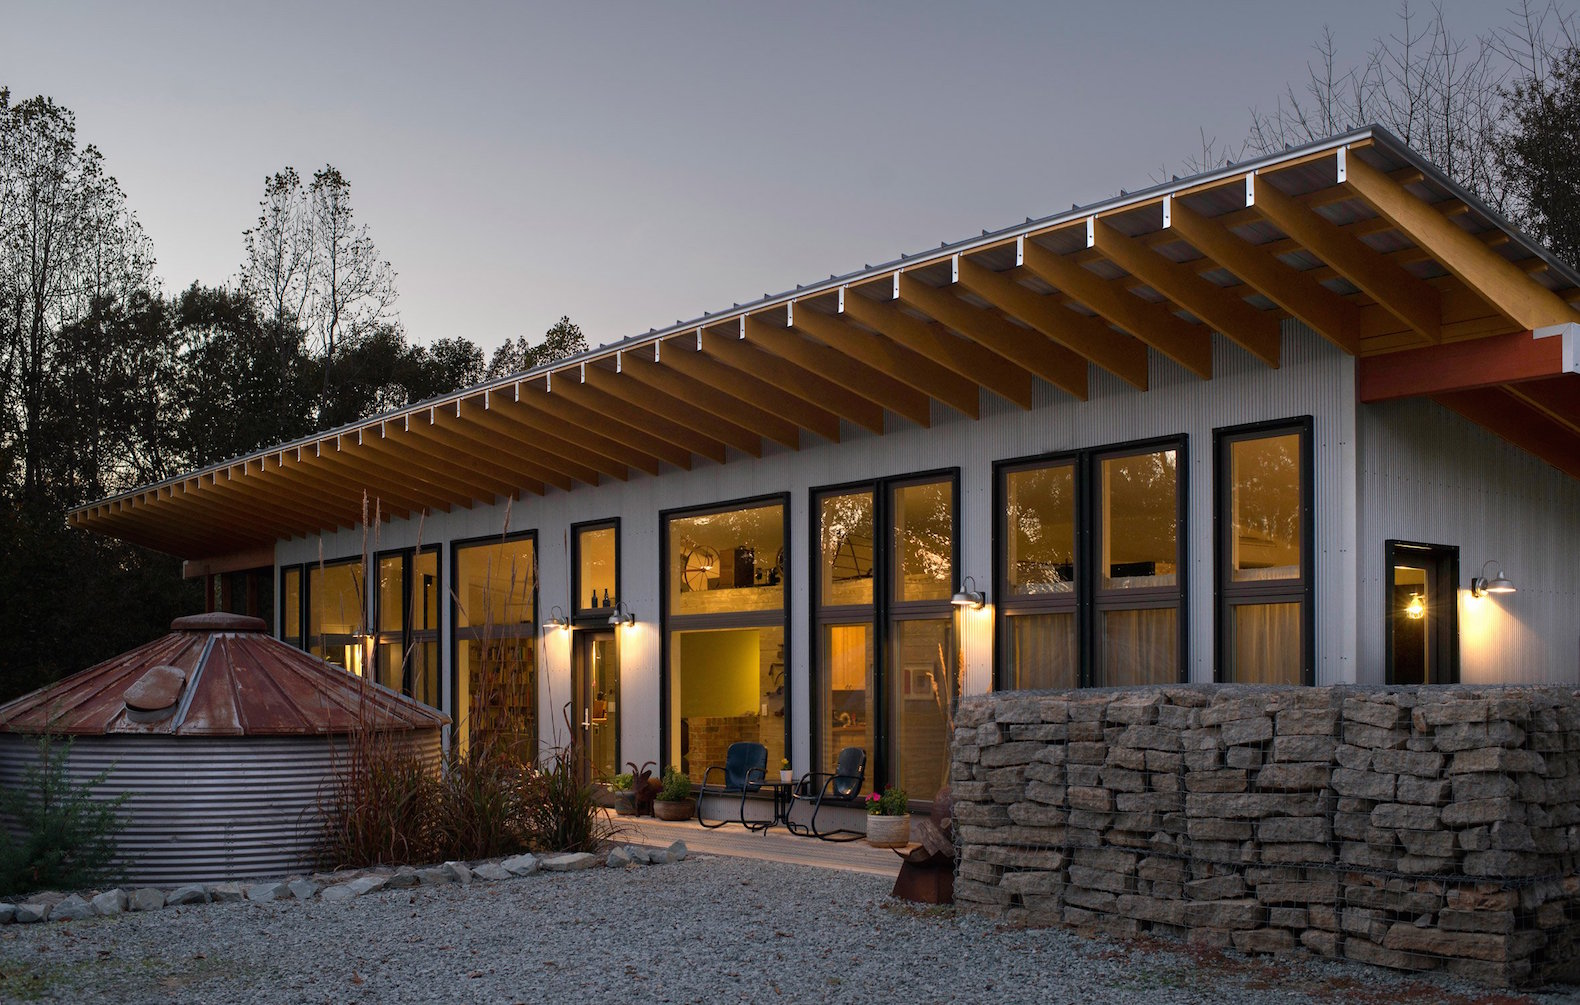 Solar-powered forever home is a modern take on the rustic farmhouse